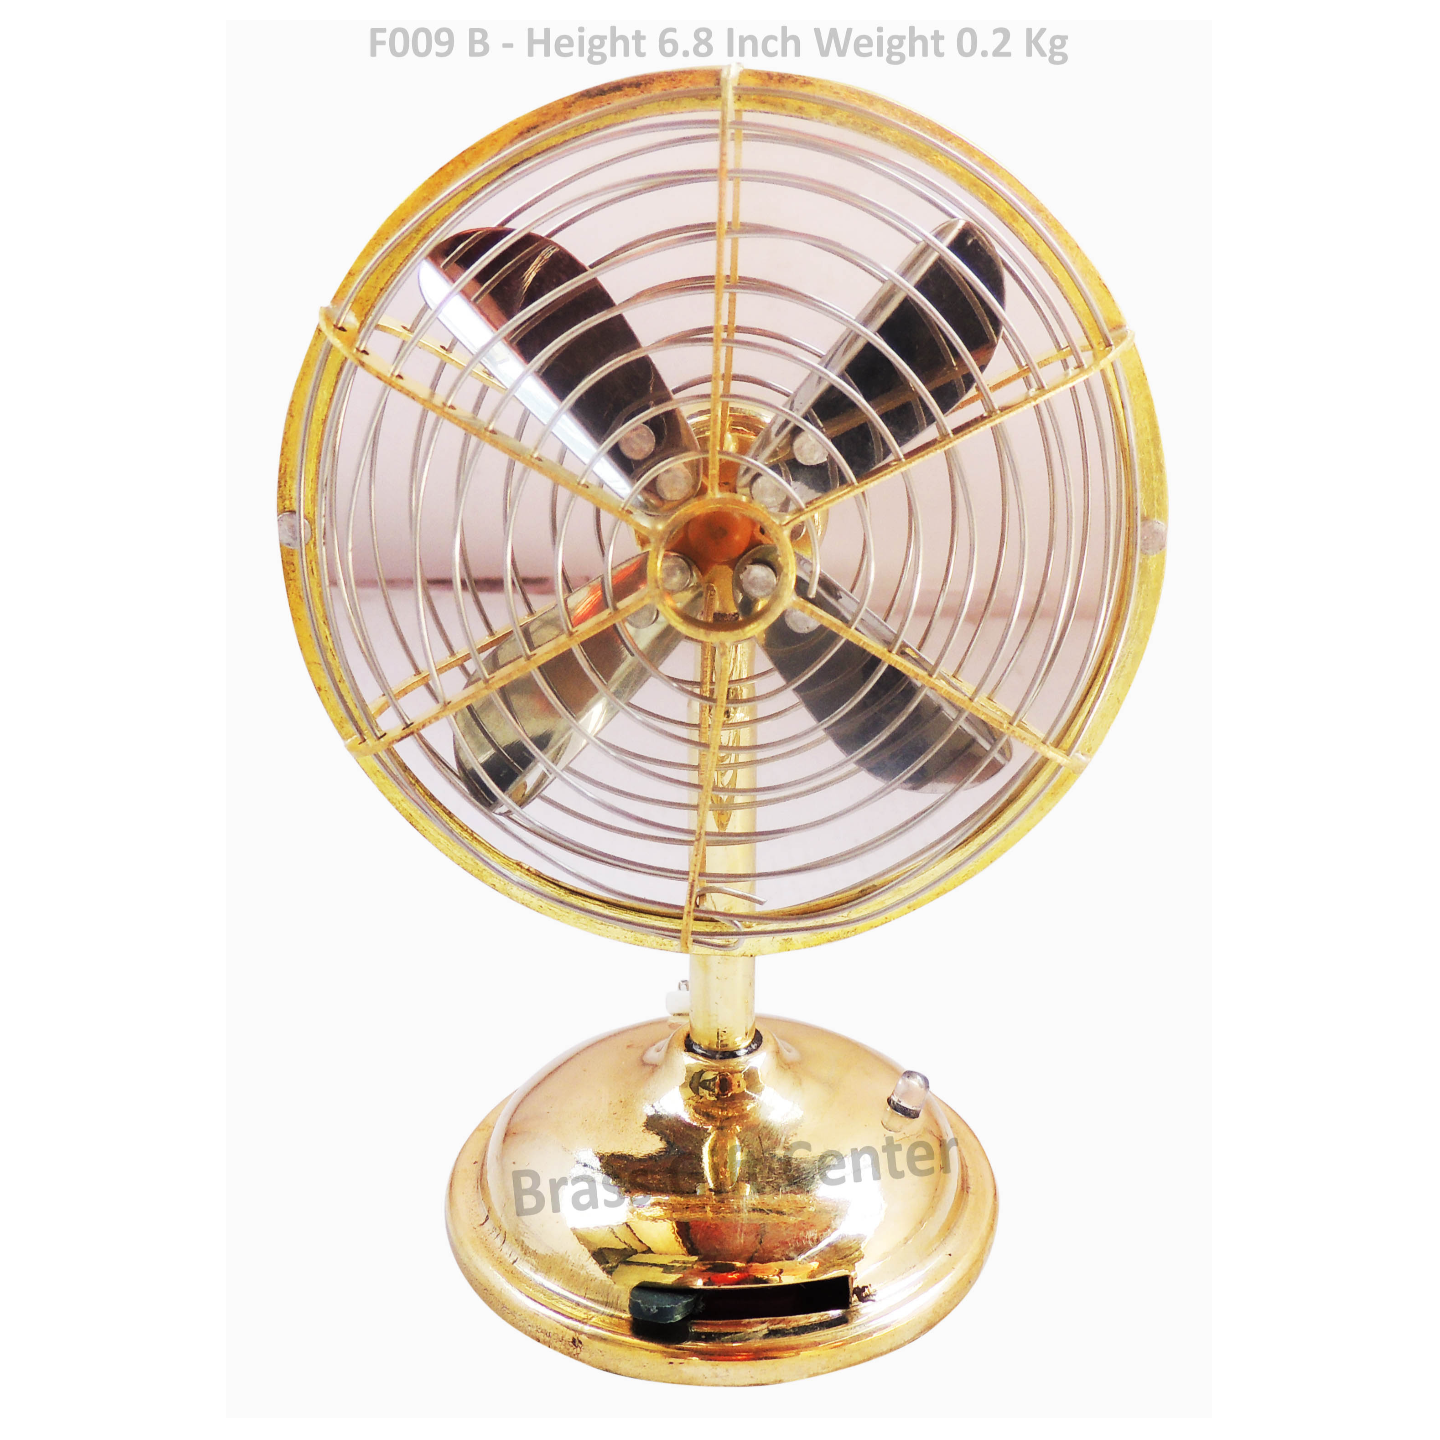 Brass Laddu Gopal Fan - 6.8 Inch (F009 B)